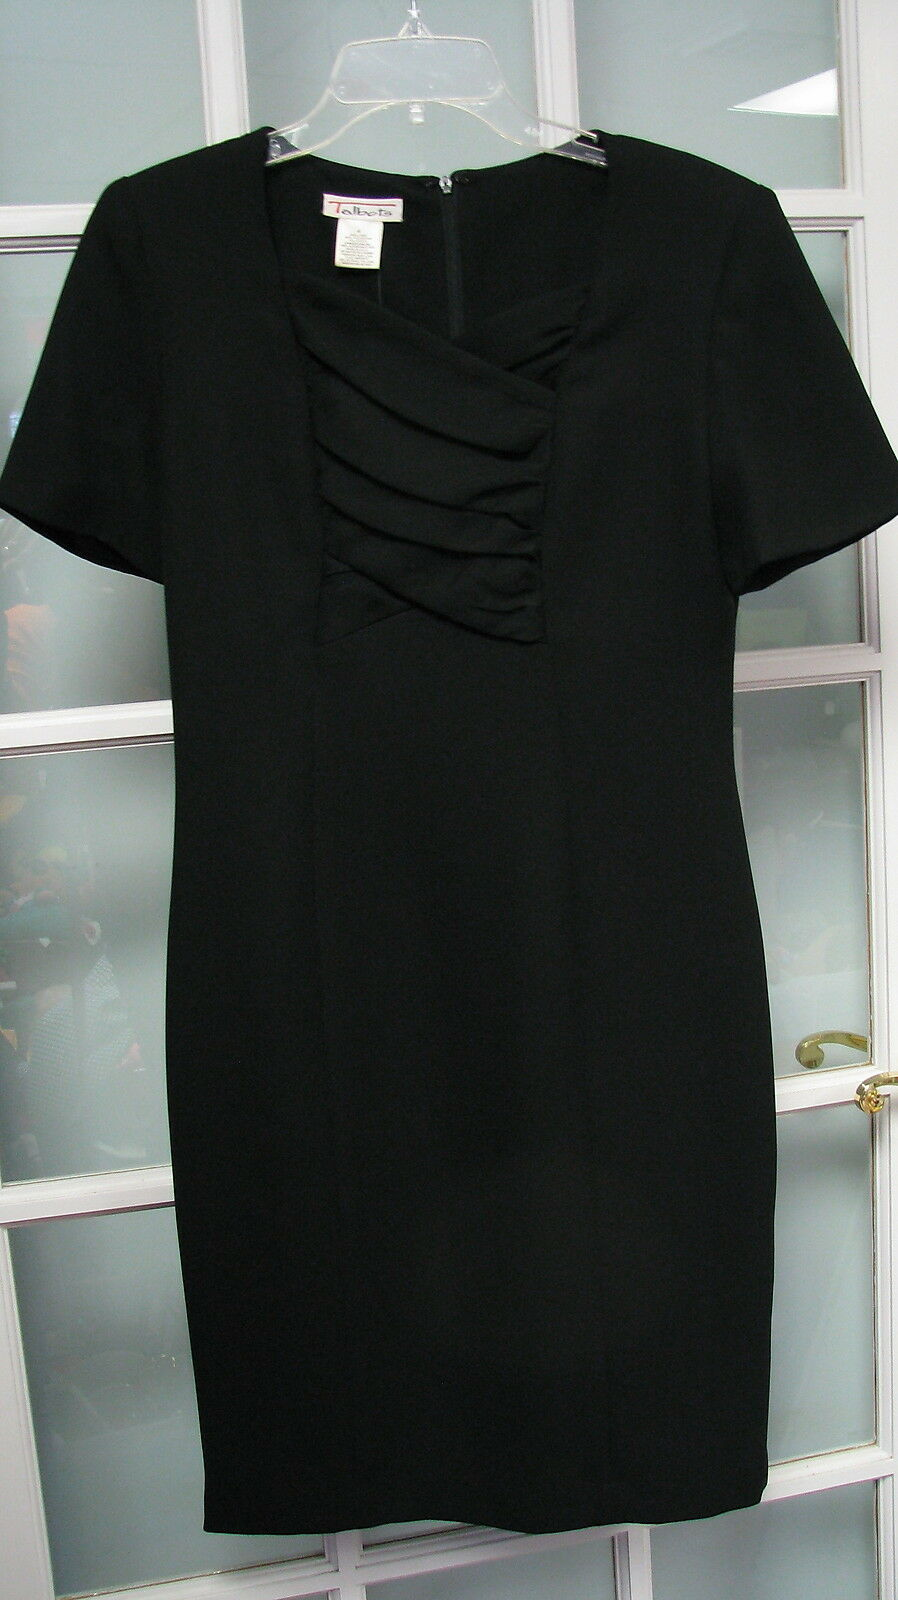 Talbots Größe 4 schwarz dress ladies damen short sleeve dinner church pleated EUC